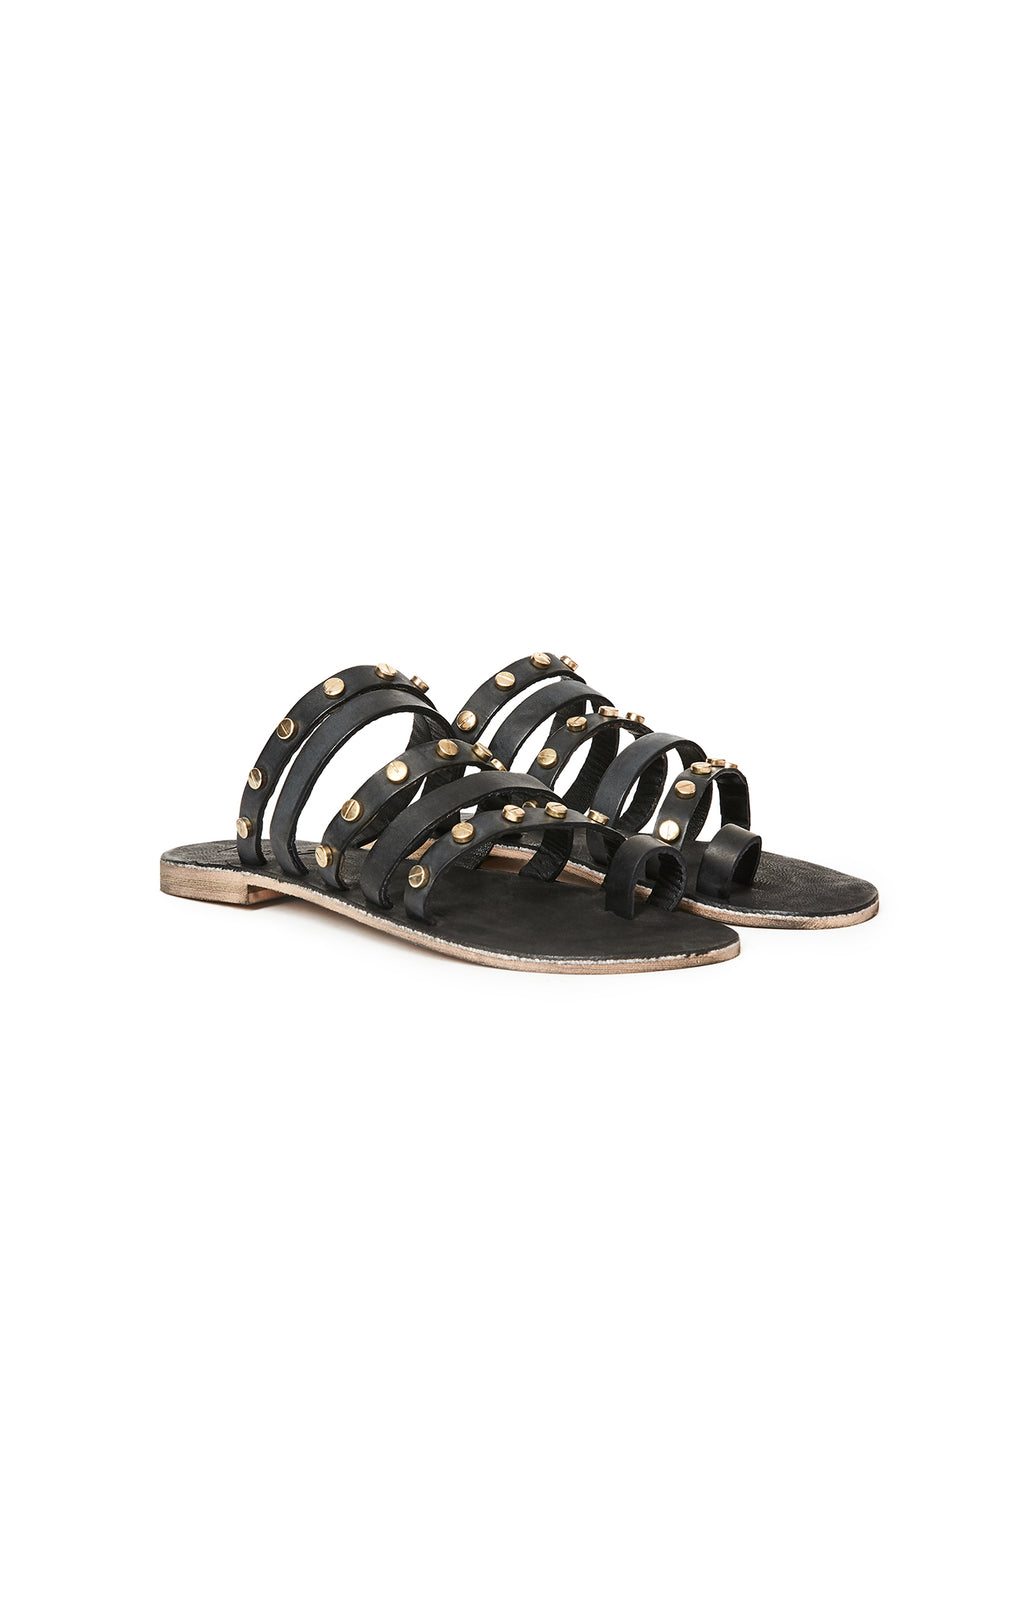 VINTAGE 7 STRAPPY SANDALS WITH GOLD STUDS